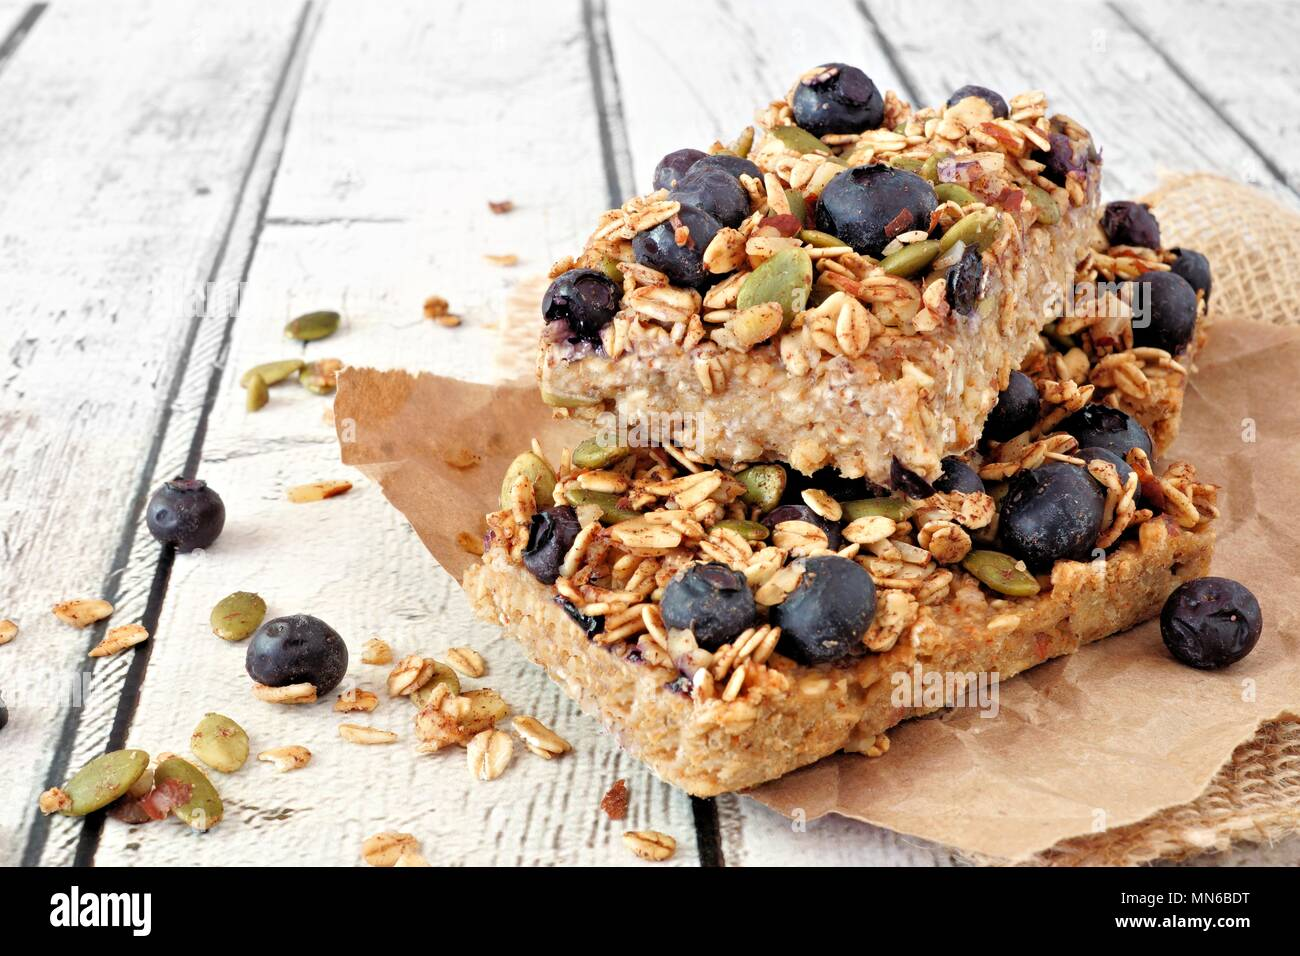 Two stacked superfood breakfast bars with oats and blueberries, side view on rustic white wood - Stock Image